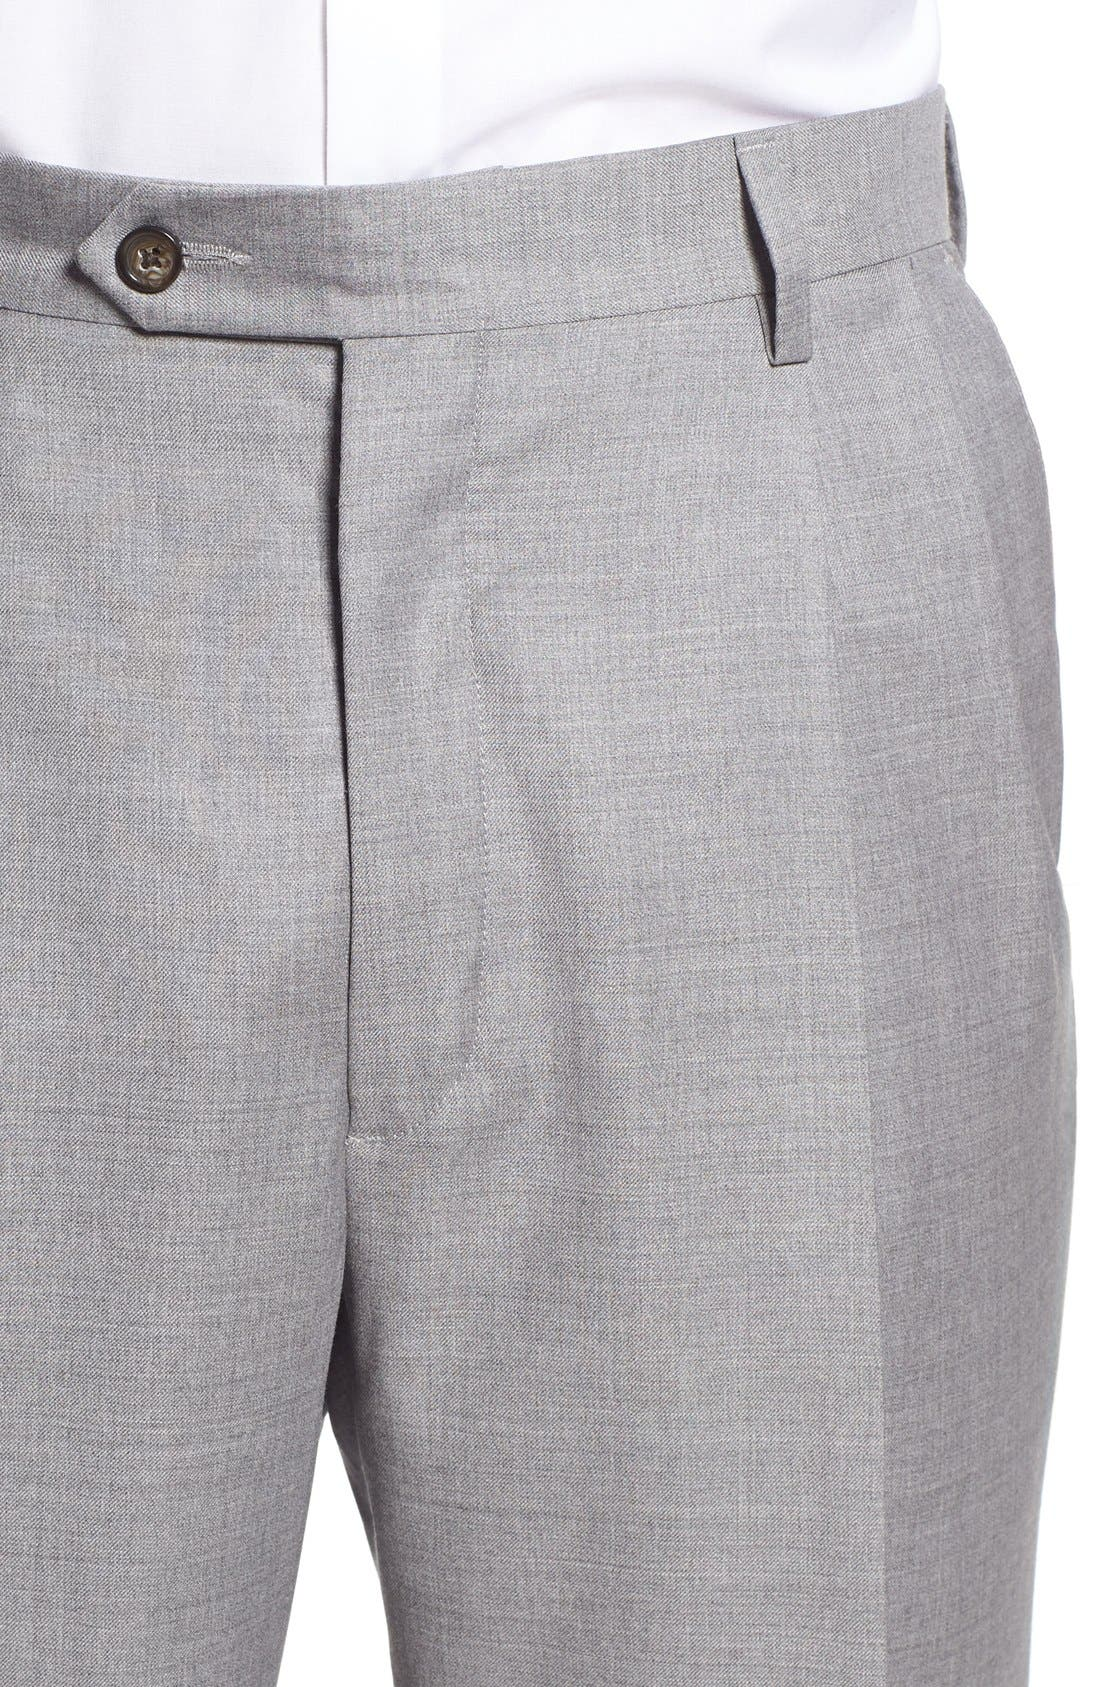 Pleated Solid Wool Trousers,                             Alternate thumbnail 5, color,                             Light Grey